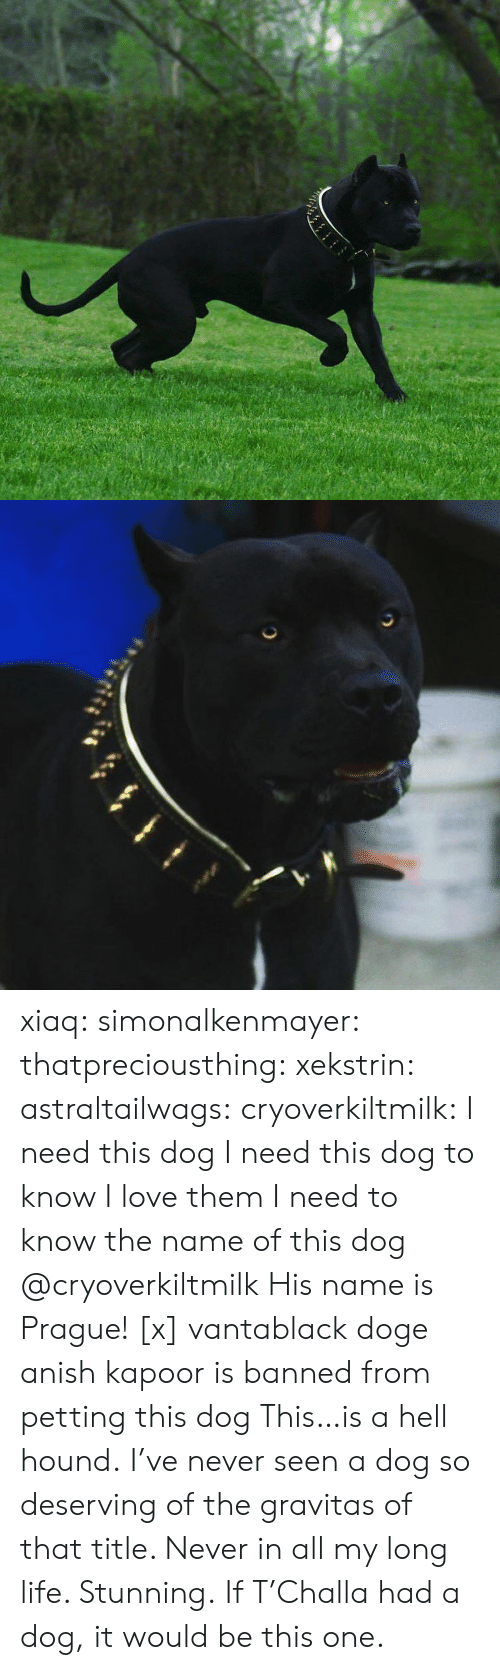 Prague: xiaq: simonalkenmayer:  thatpreciousthing:  xekstrin:  astraltailwags:  cryoverkiltmilk:  I need this dog I need this dog to know I love them I need to know the name of this dog  @cryoverkiltmilk  His name is Prague! [x]  vantablack doge   anish kapoor is banned from petting this dog  This…is a hell hound. I've never seen a dog so deserving of the gravitas of that title. Never in all my long life. Stunning.   If T'Challa had a dog, it would be this one.